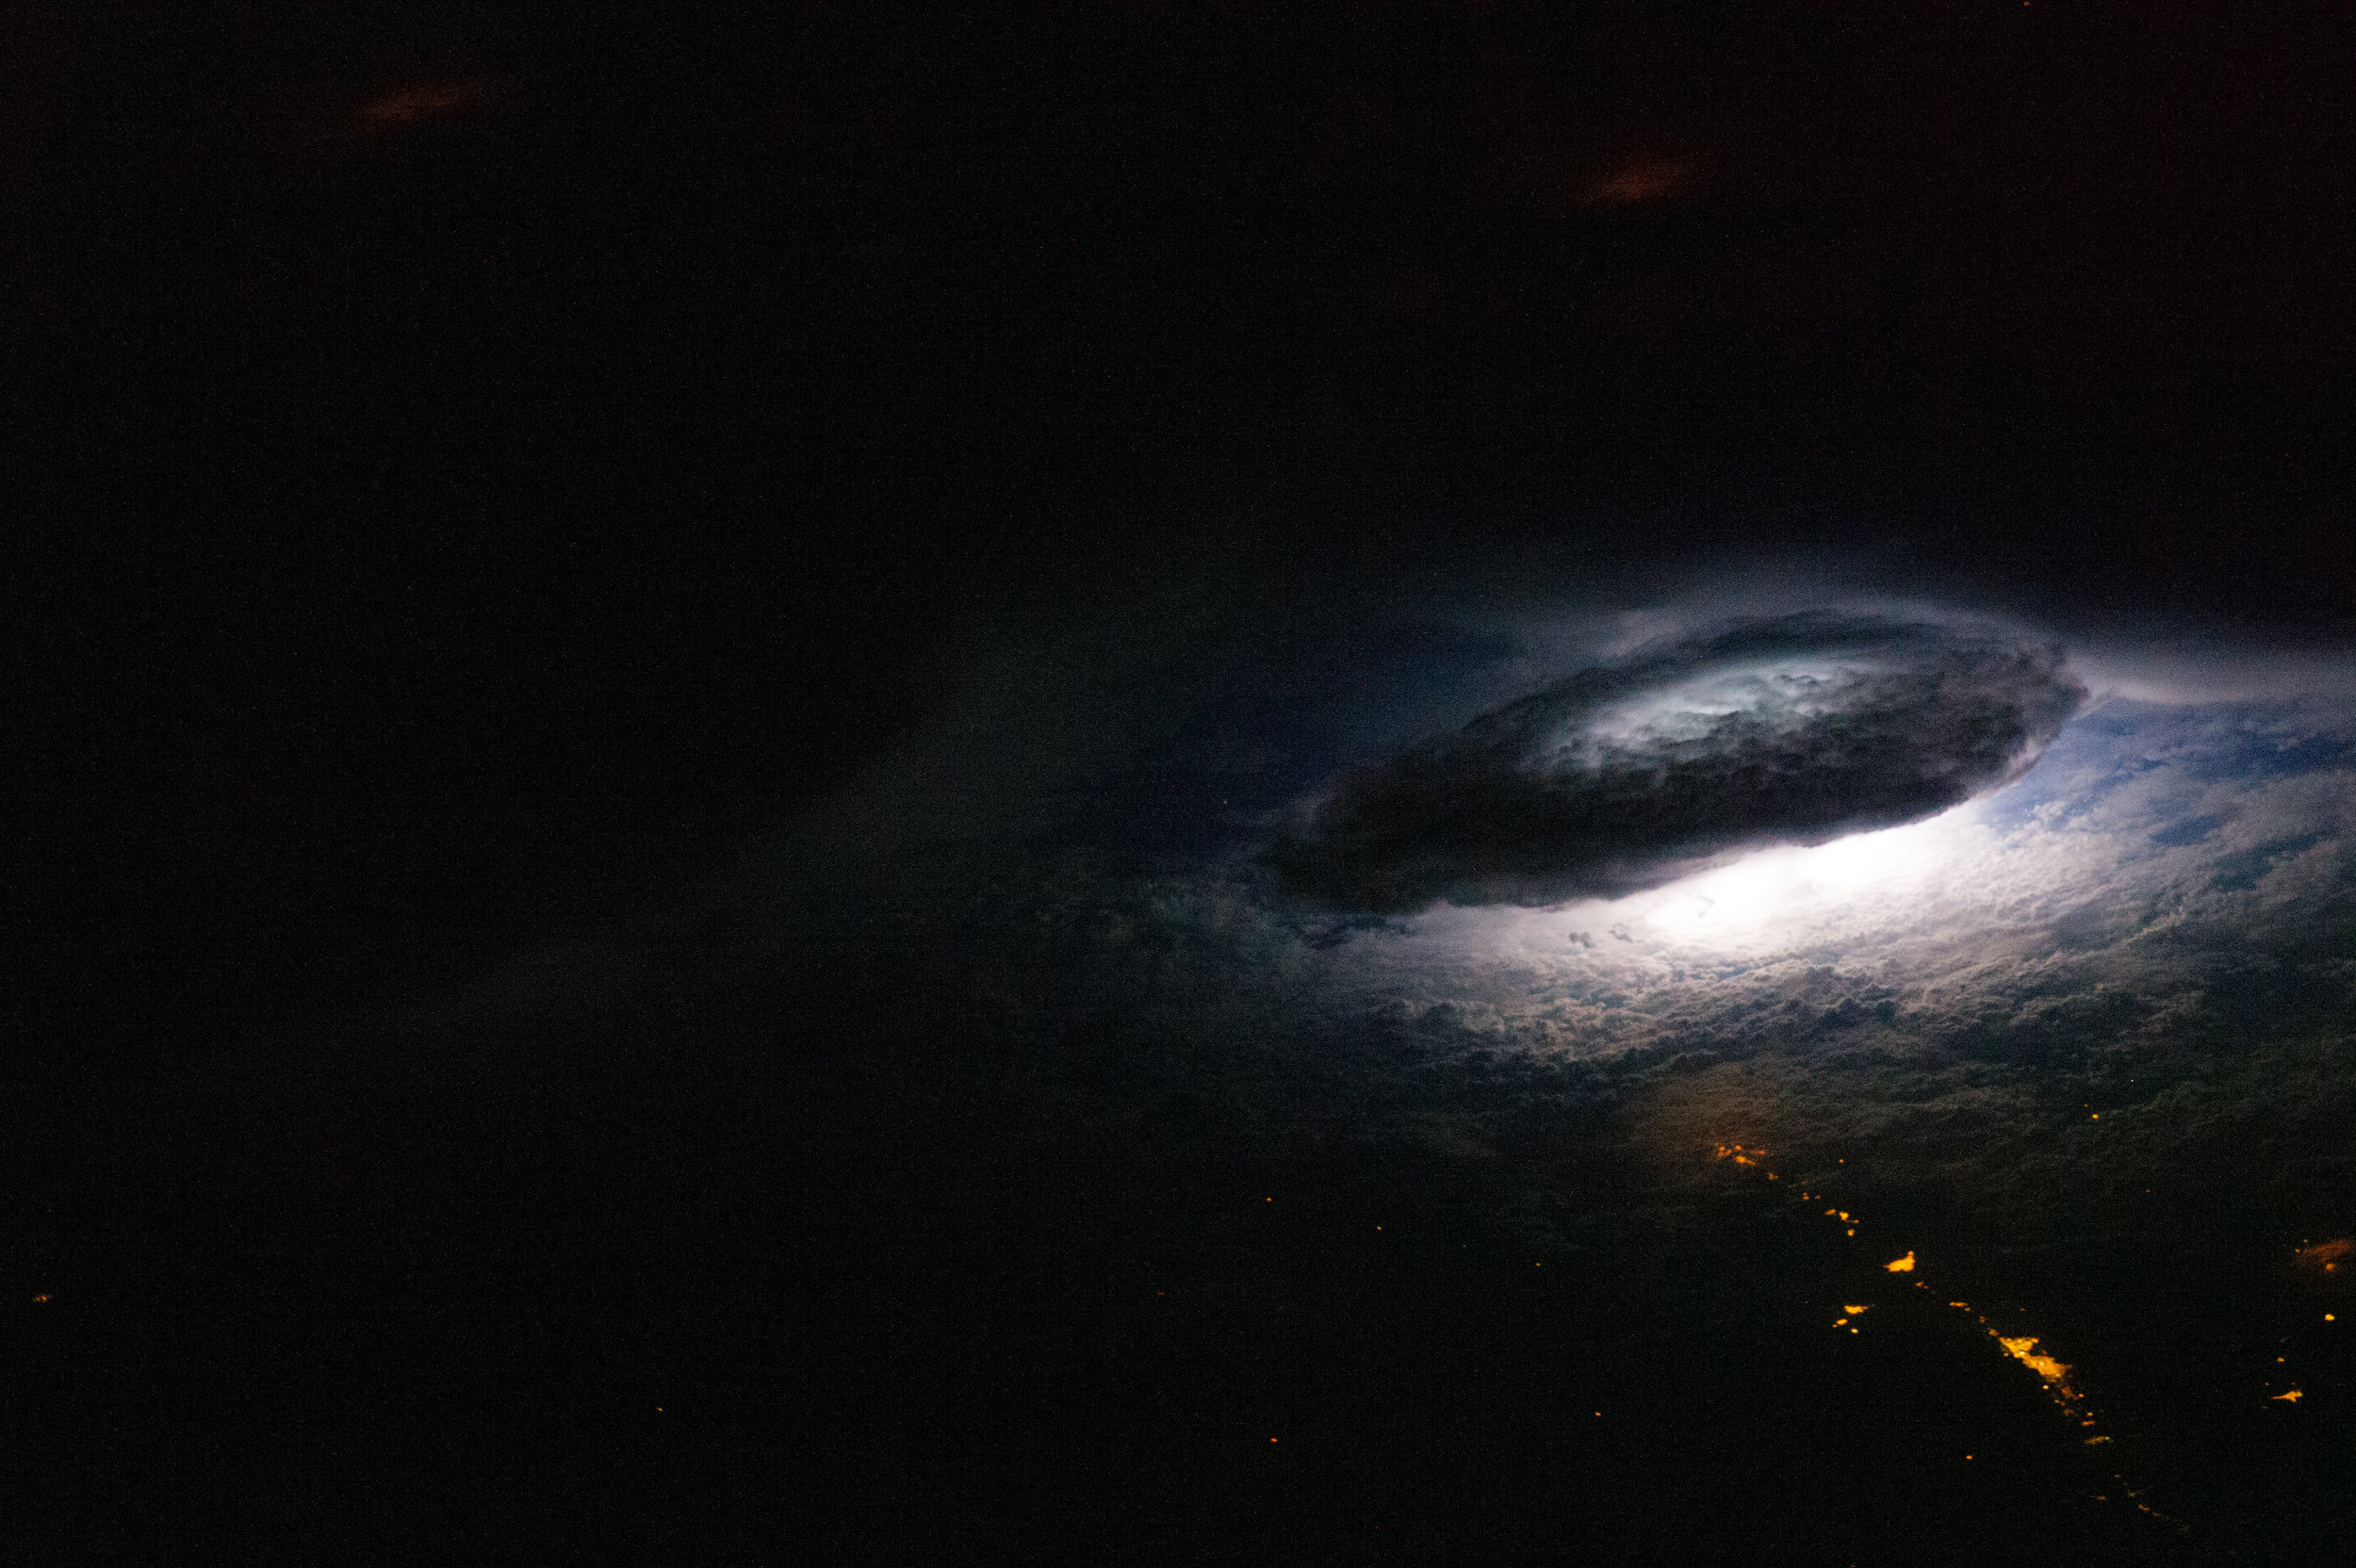 An astronaut orbiting over Bolivia captured a close-up of a lightning flash beneath a thunderhead on January 9, 2011. Image credit:  NASA